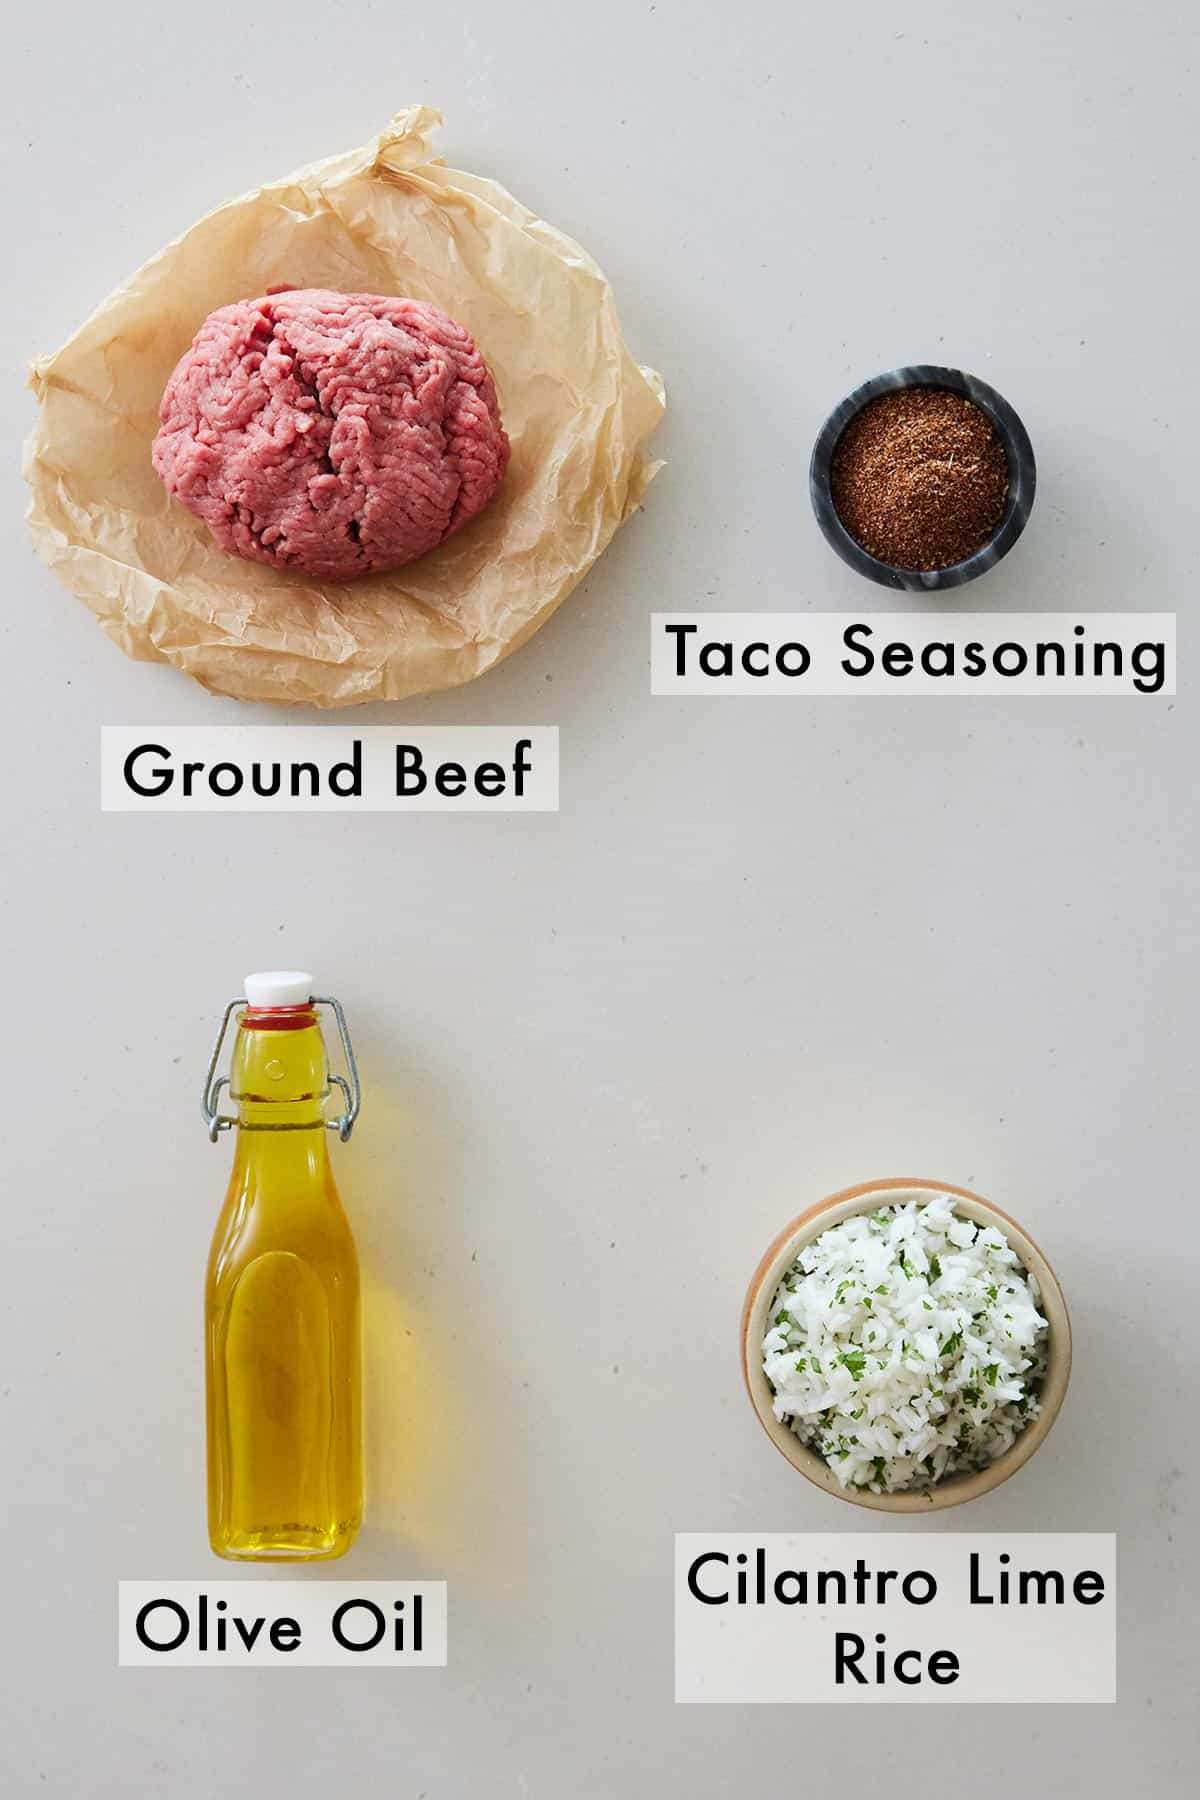 Ingredients needed to make a taco bowl.